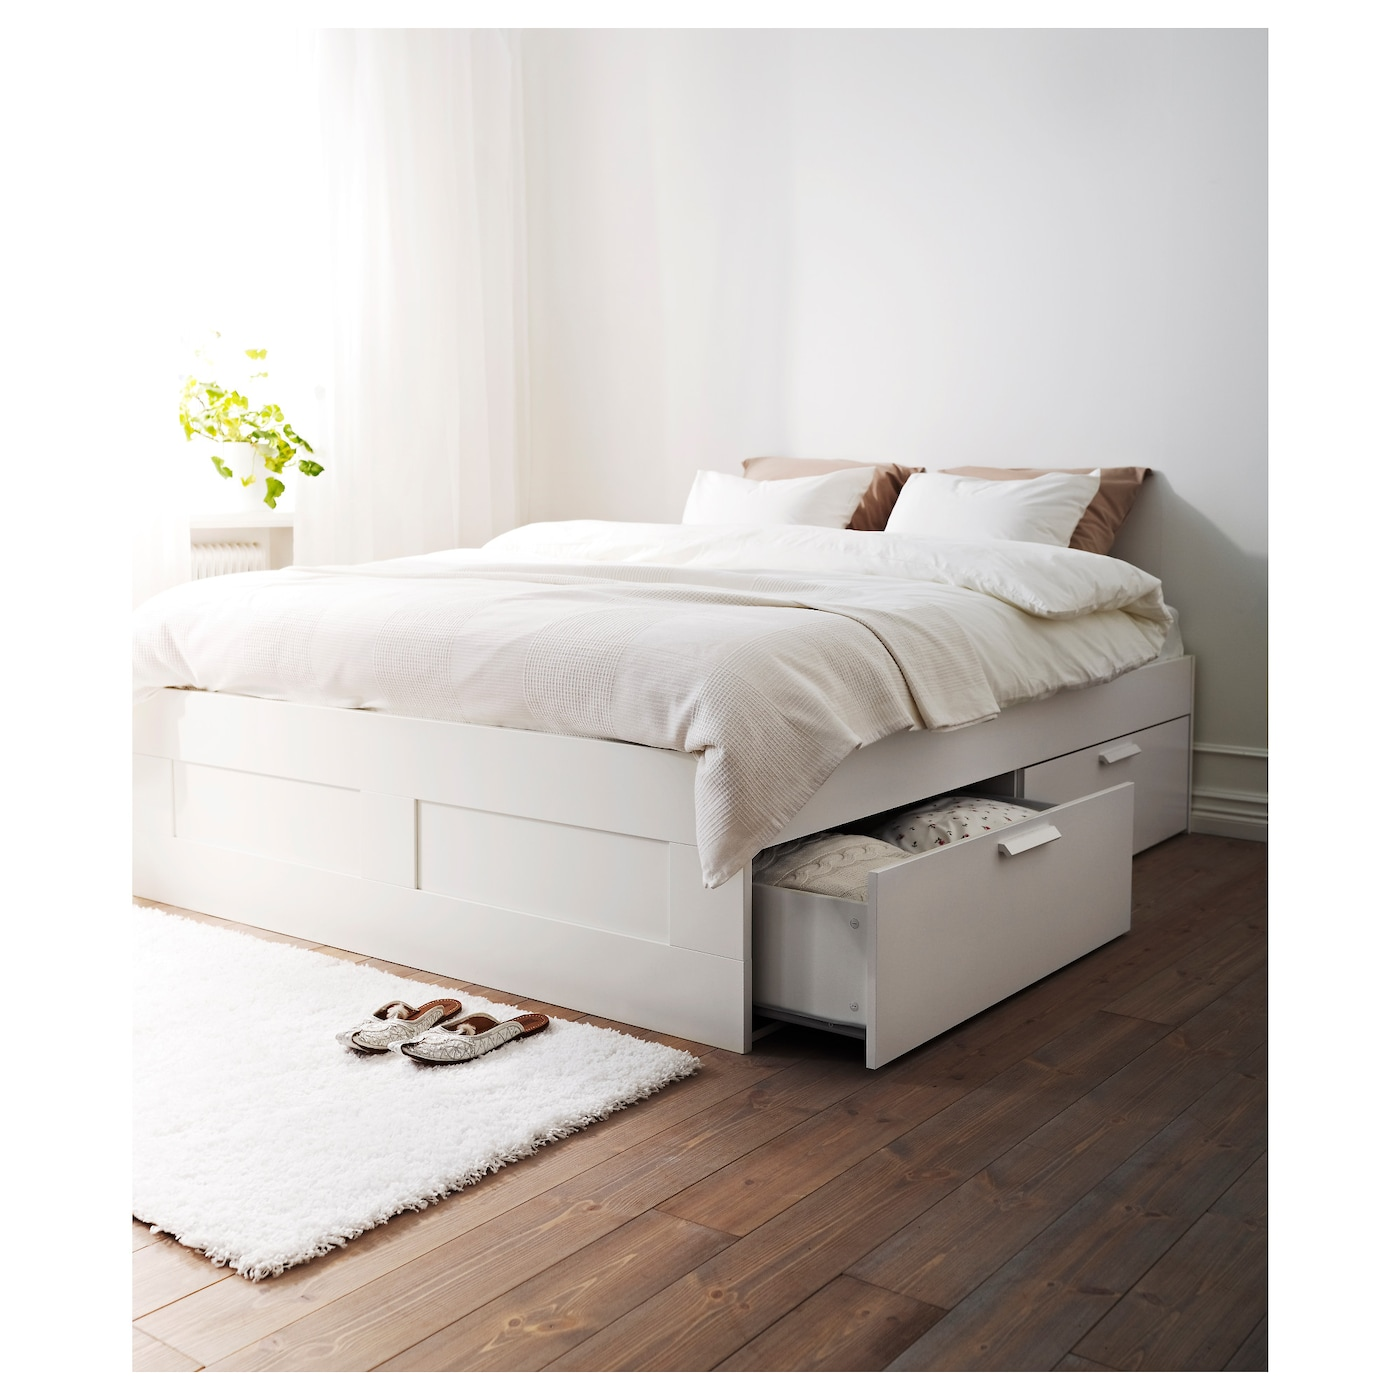 brimnes cadre lit avec rangement blanc lur y 140 x 200 cm ikea. Black Bedroom Furniture Sets. Home Design Ideas